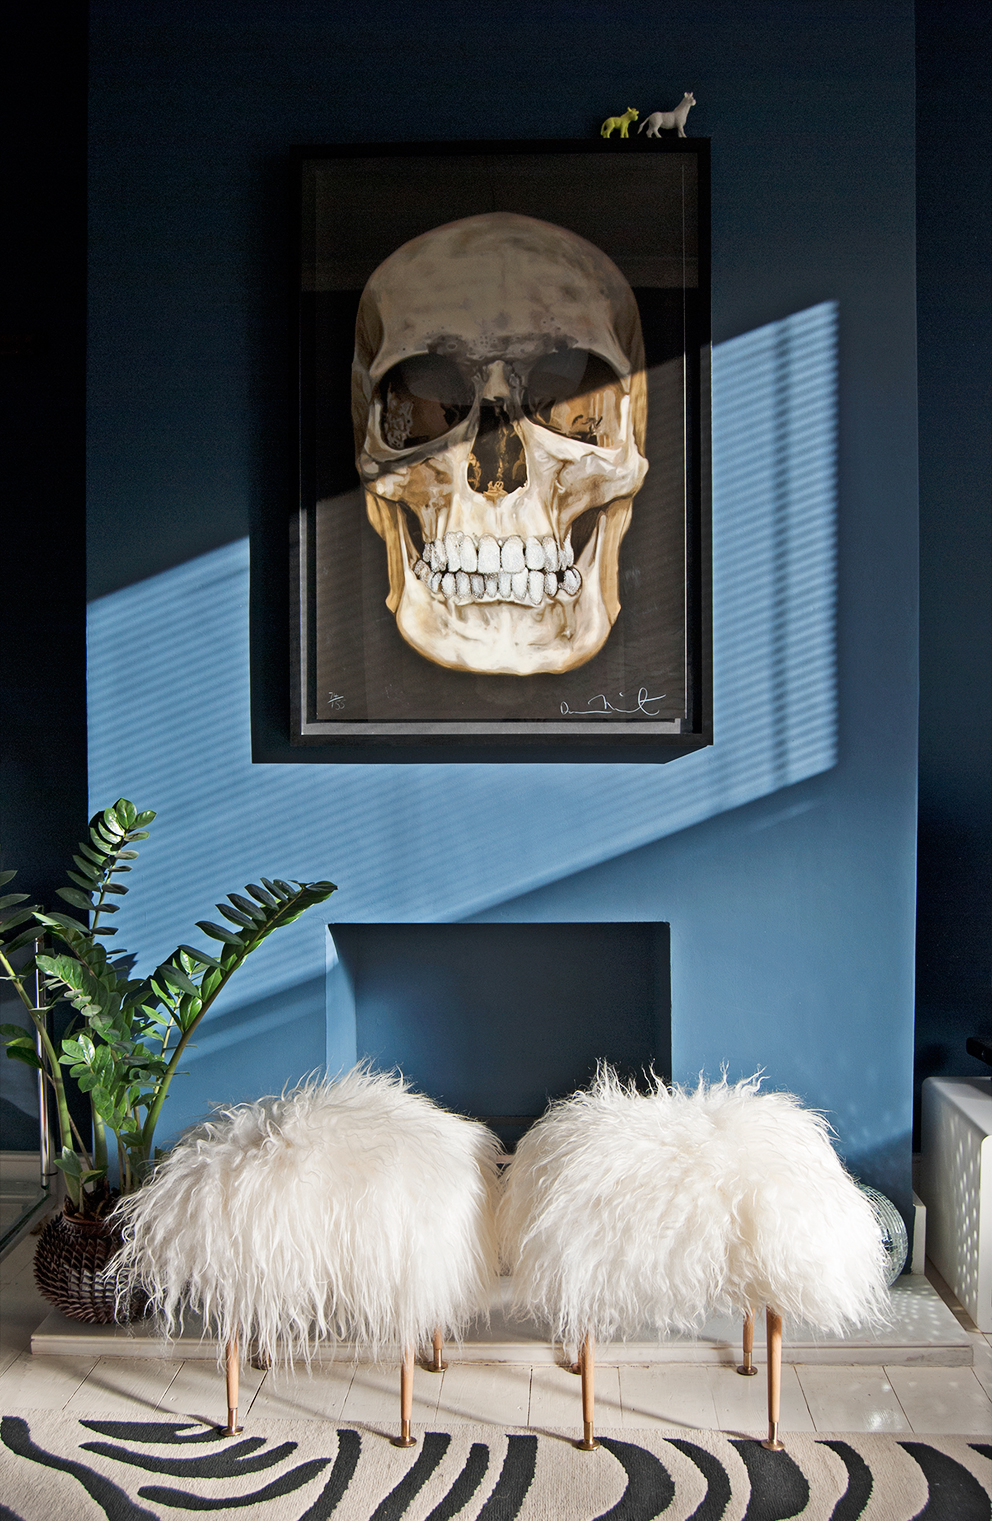 Navy Chimney Breast with Skull Print, Plants and Sheepskin Stools - French For Pineapple Blog